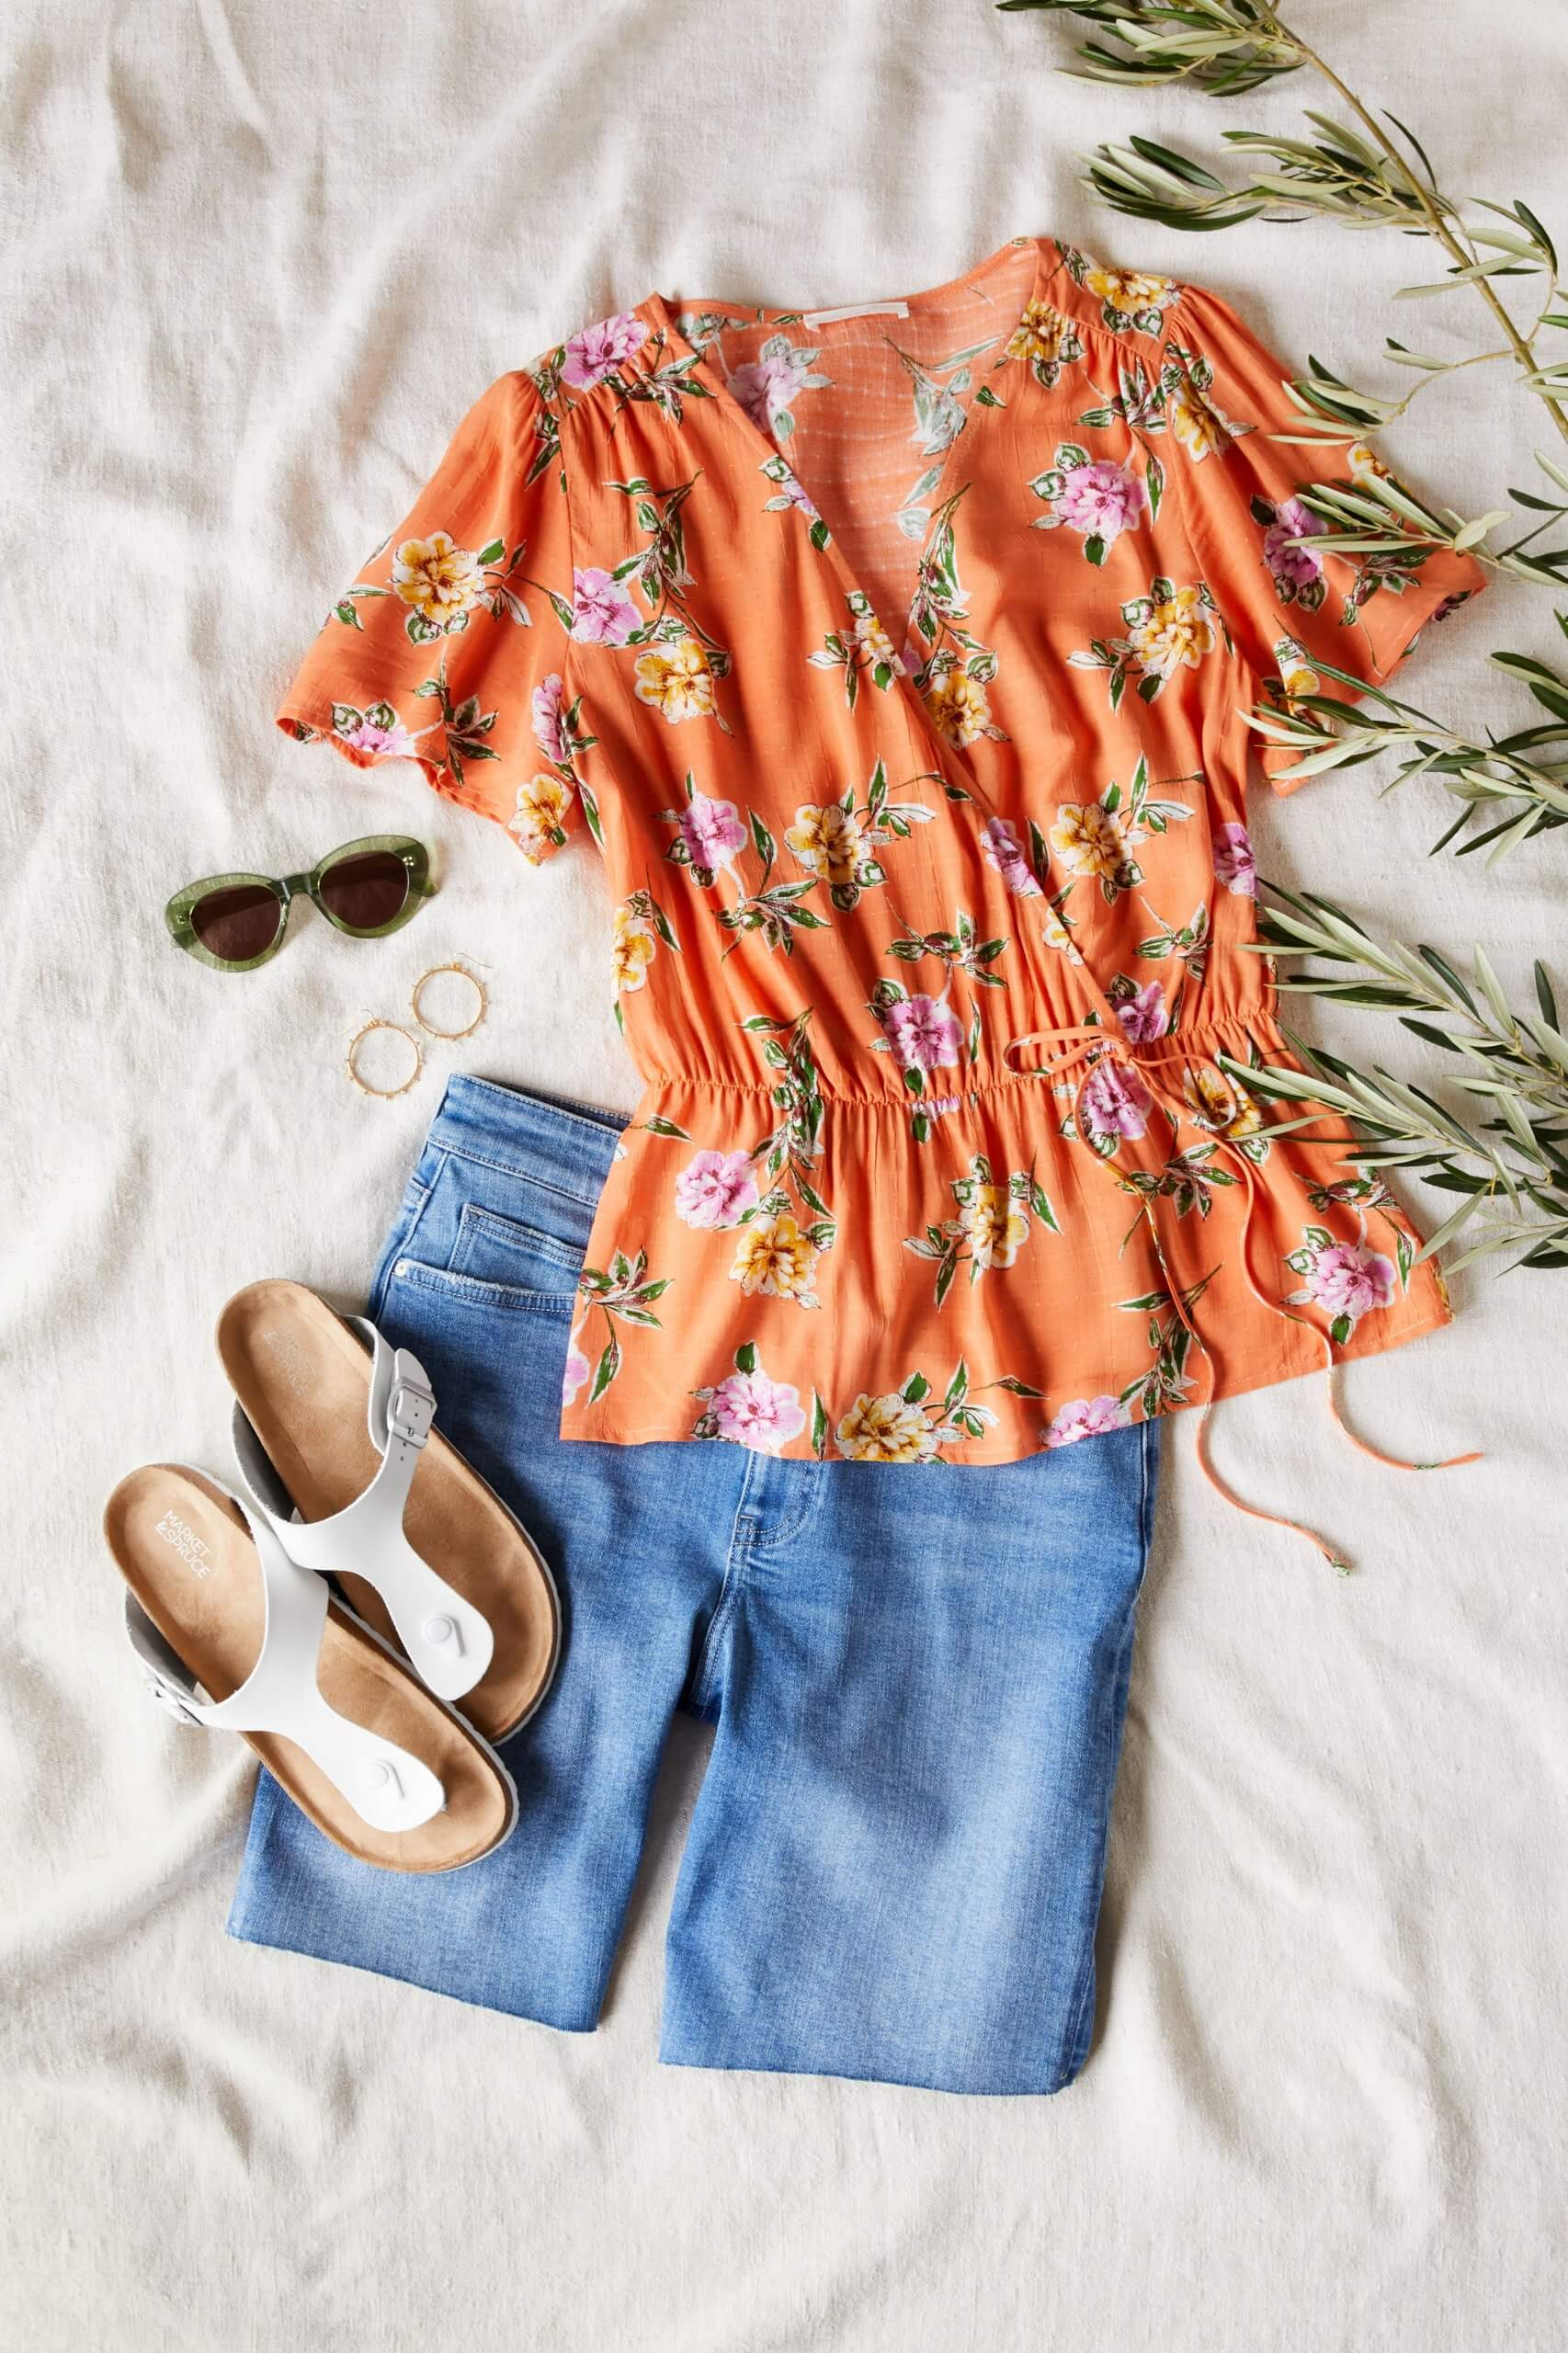 Stitch Fix Women's outfit laydown featuring orange floral wrap shirt, blue bermuda denim shorts, gold hoop earrings, white sandals and sunglasses.